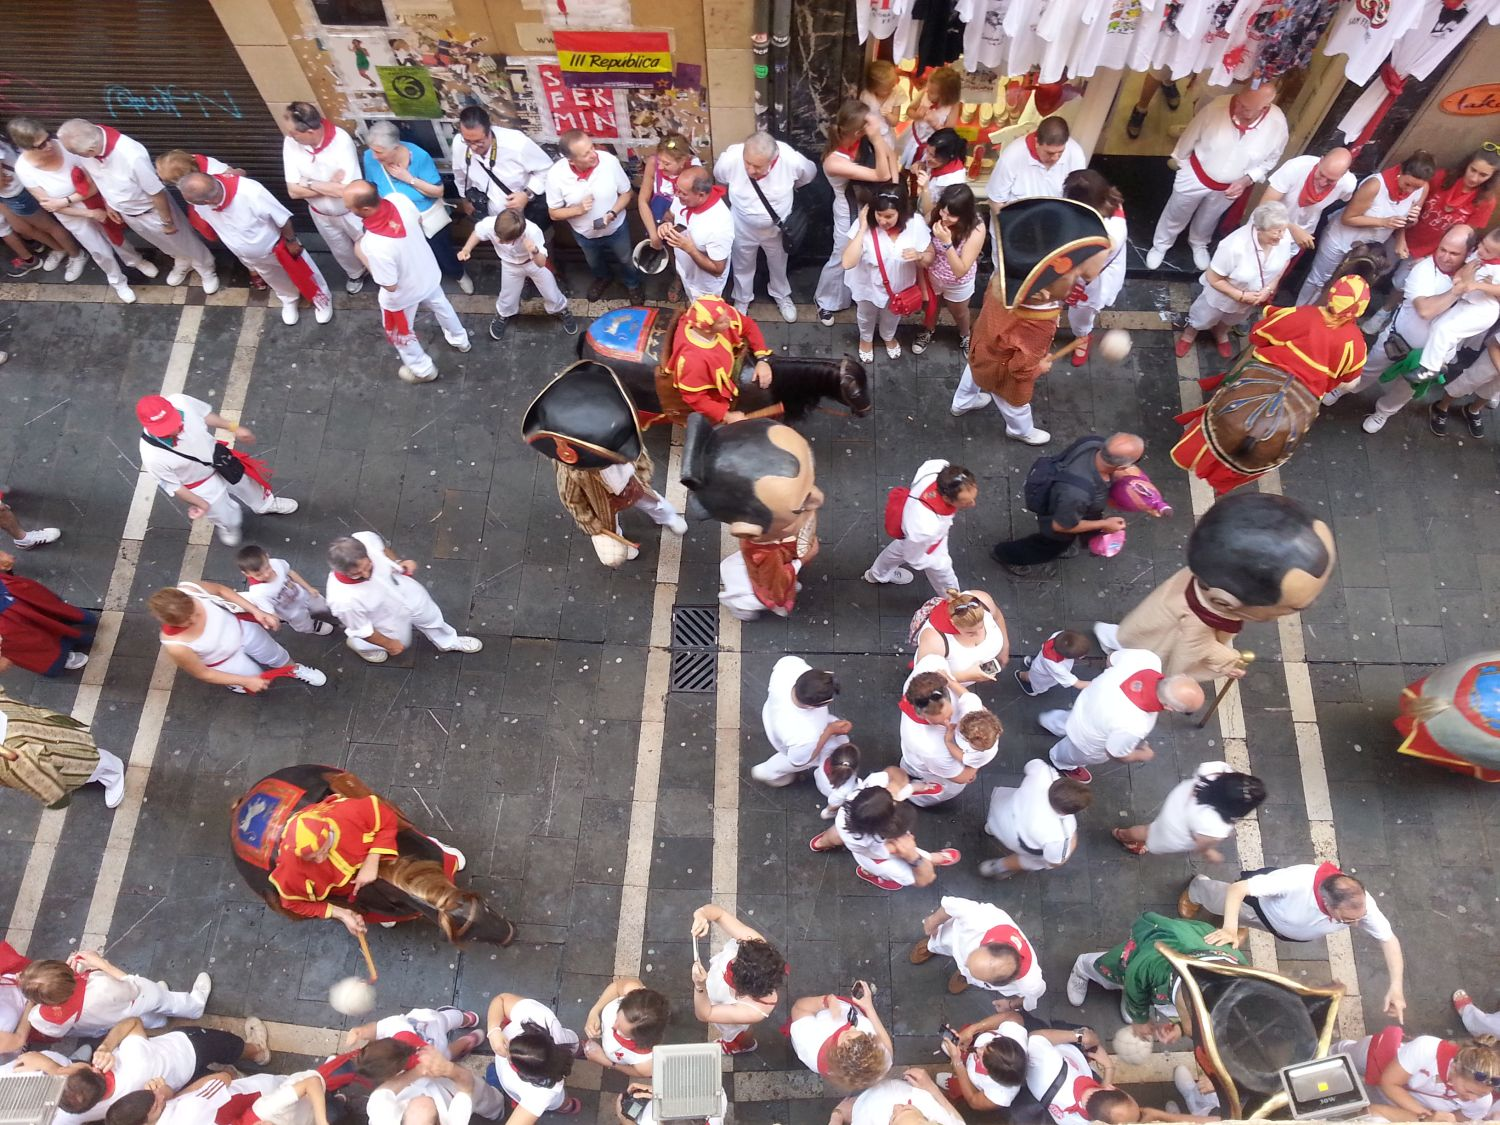 [Spain] Fiesta in Pamplona: the fierce and colorful San Fermin festival